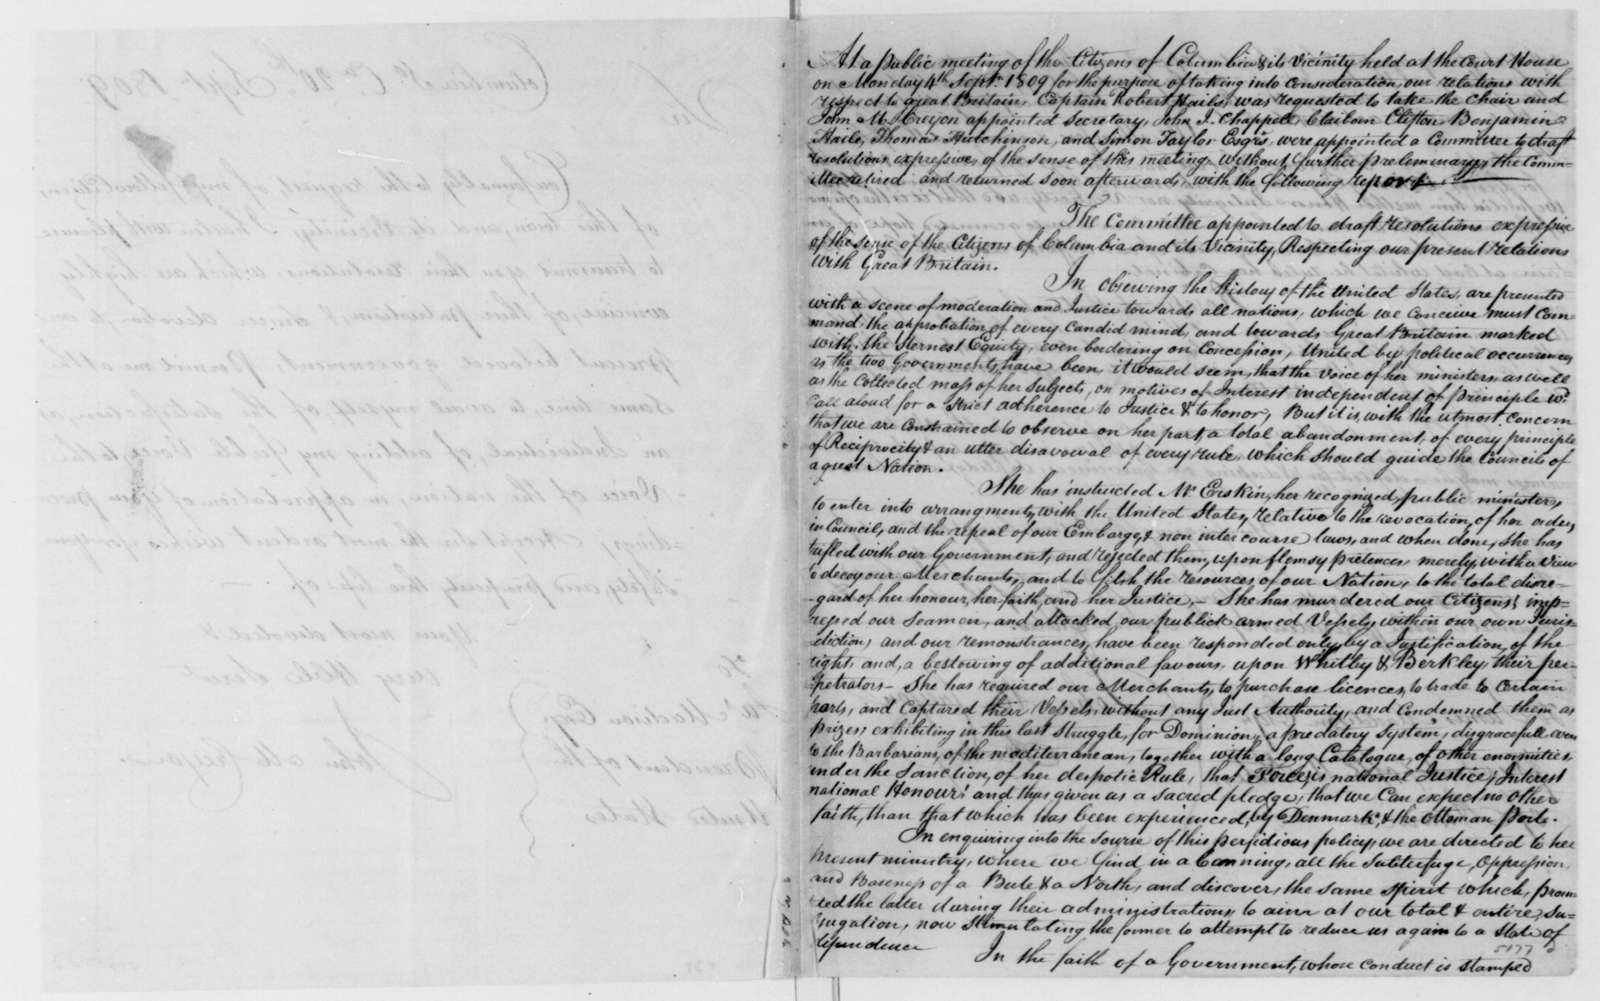 John M. Creyon to James Madison, September 20, 1809. Includes resolutions from Columbia South Carolina Citizens.